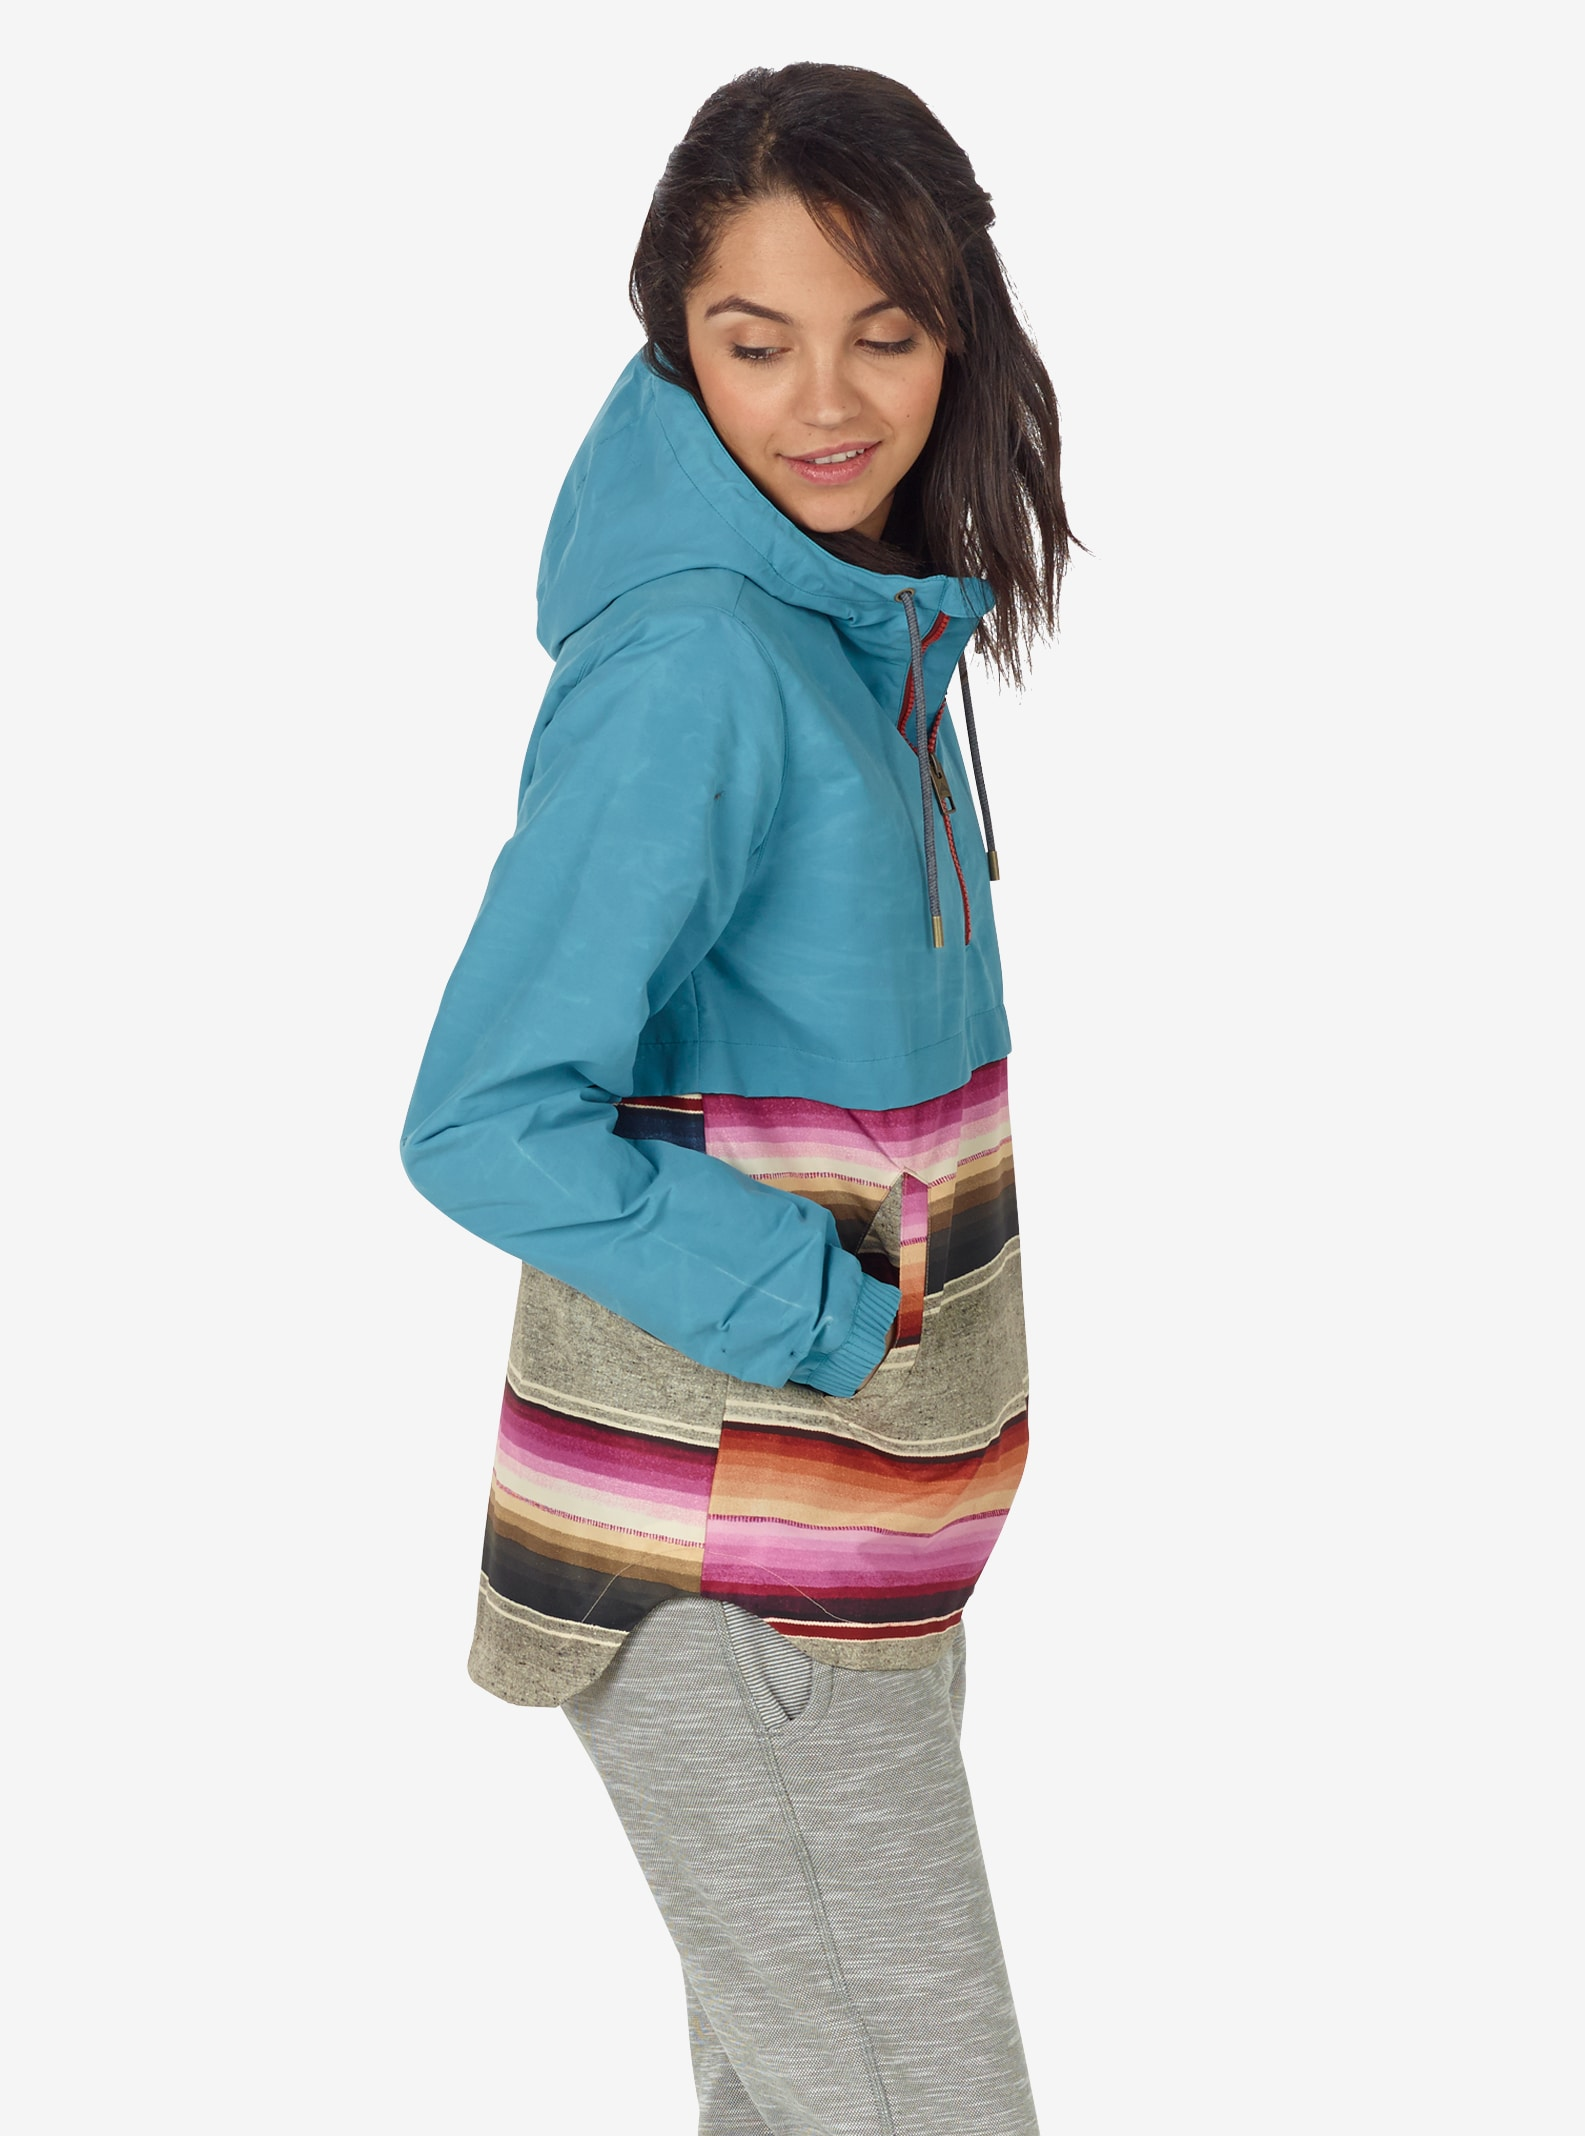 Women's Burton Journey Anorak Jacket shown in Larkspur / Mojave Stripe